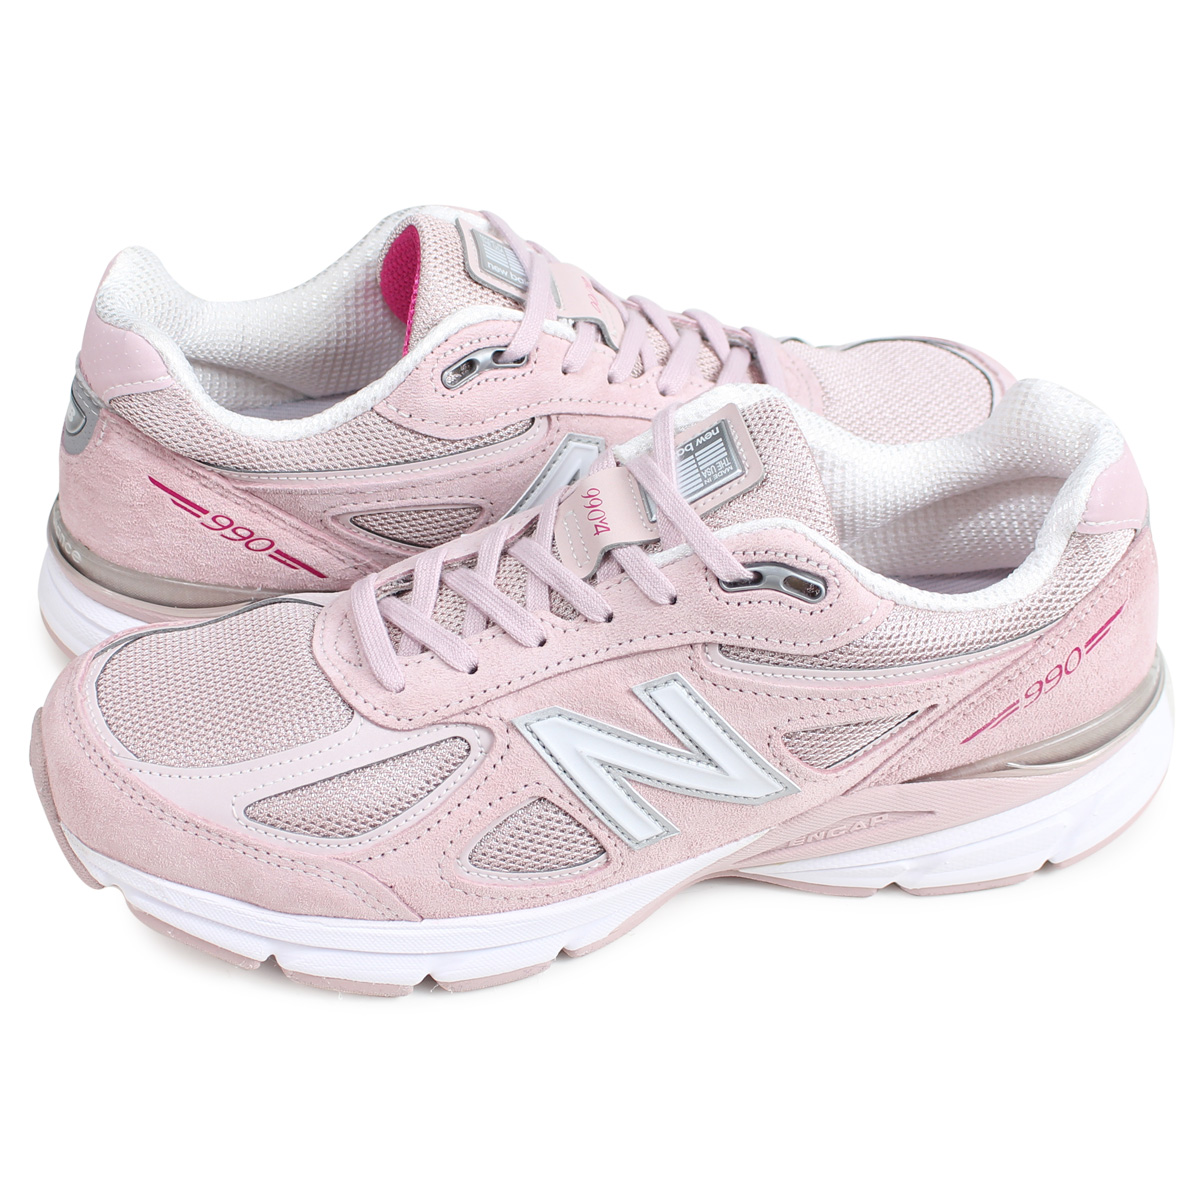 factory price 2d03d 110e7 new balance M990KMN4 New Balance 990 sneakers men MADE IN USA D Wise pink  [193]